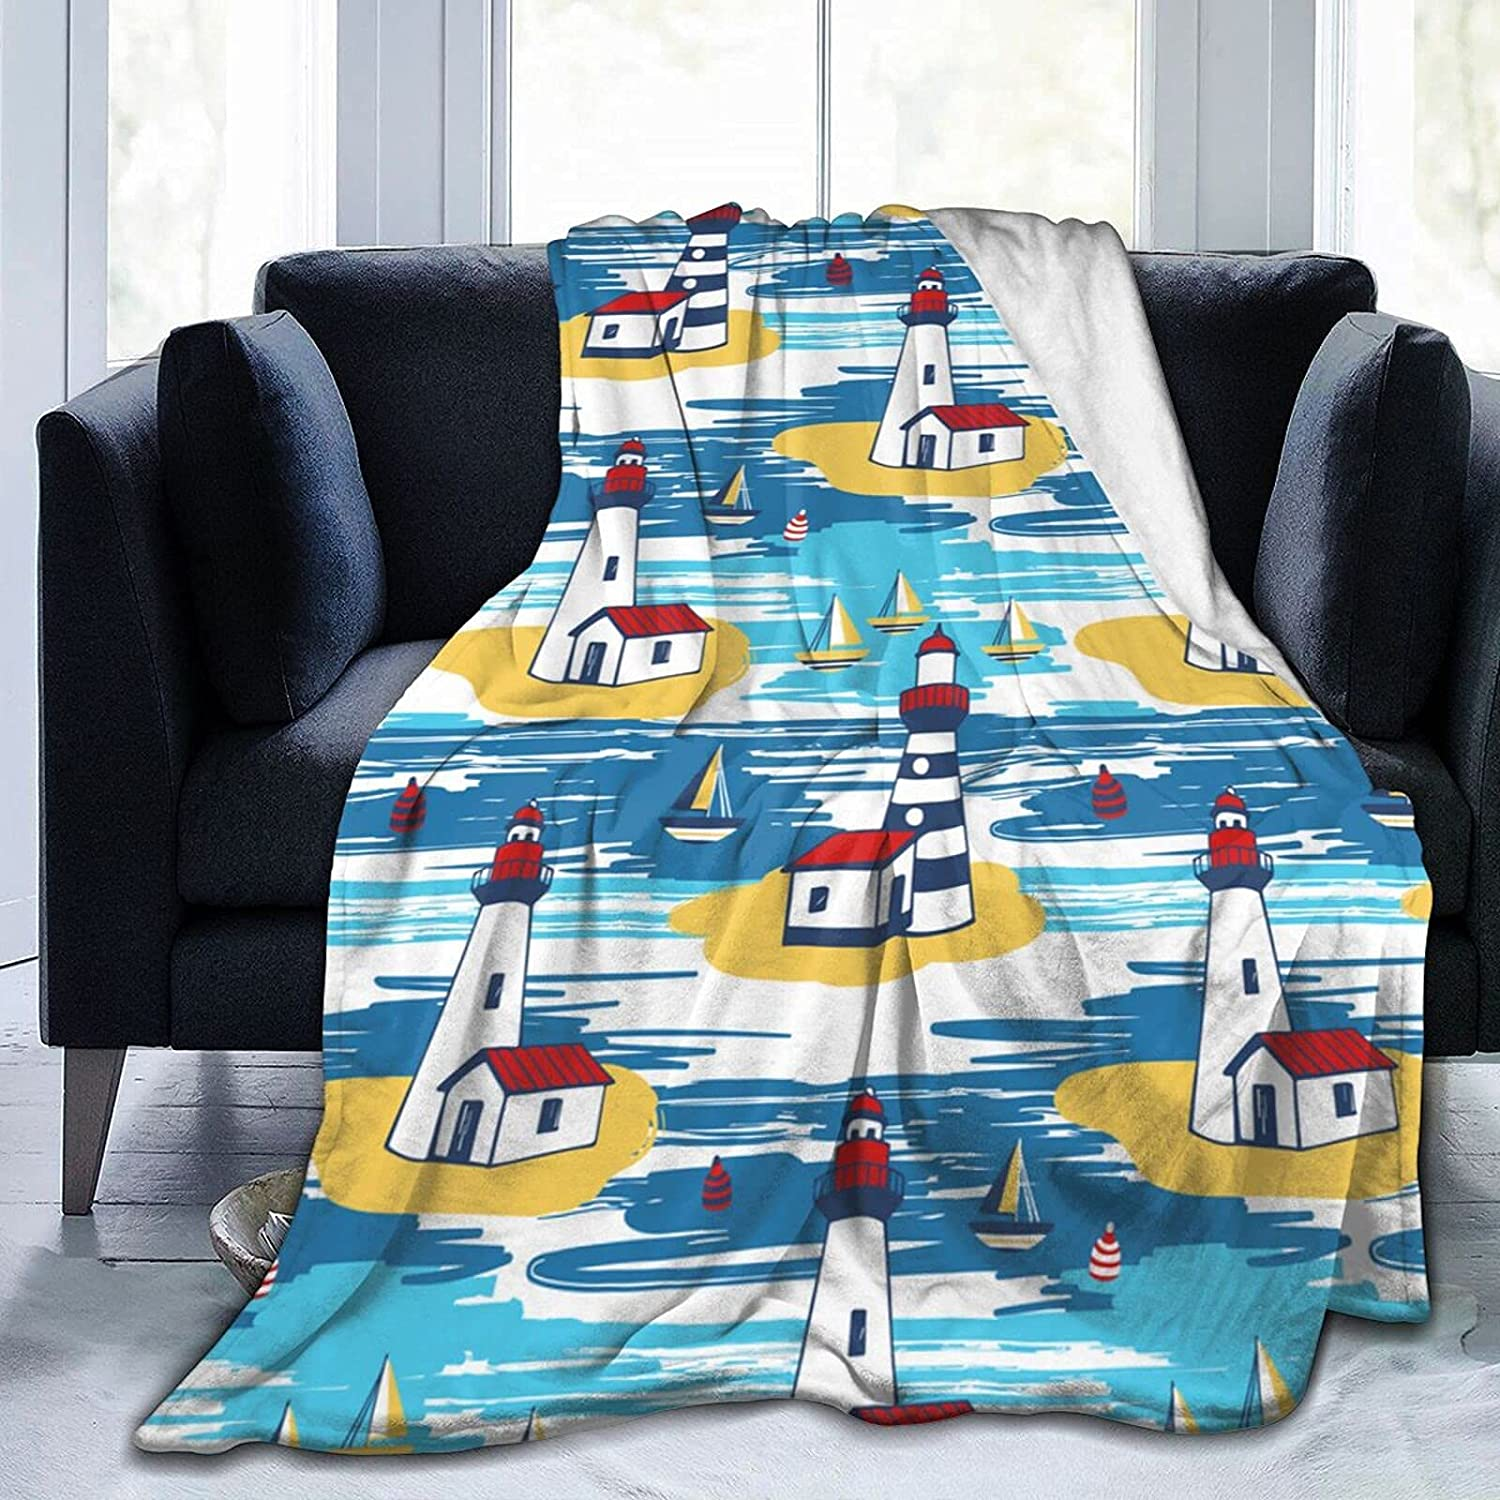 Colorful Lighthouse Landscape 2021new shipping free Fleece Fle Blanket Soft-Warm Limited time sale Throw